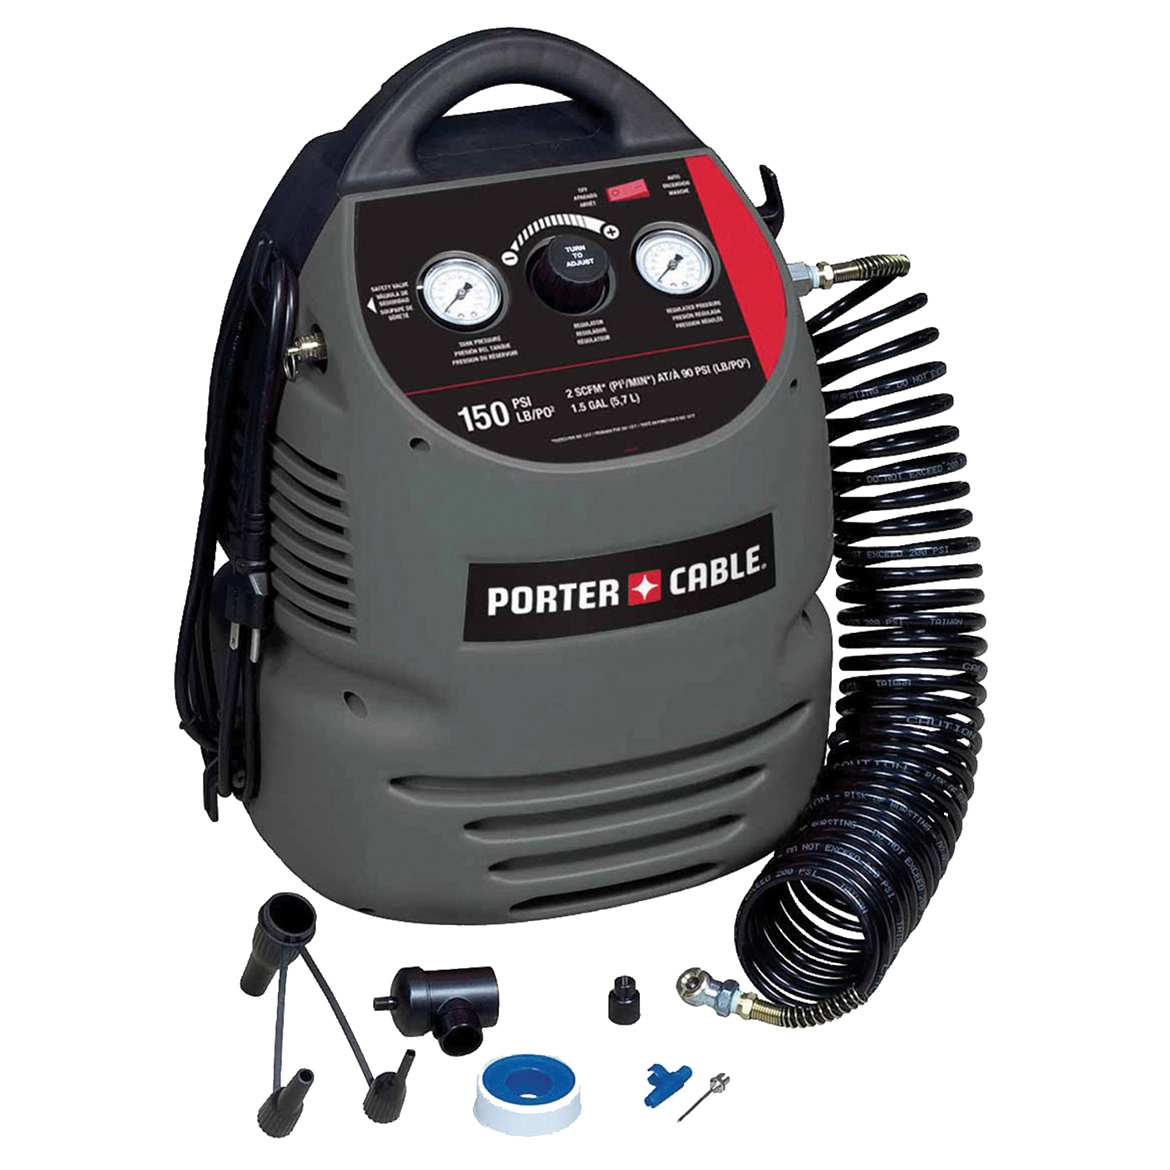 Porter Cable CMB15 120-Volt 1.5-Gallon Electric Fully Shourded Air Compressor